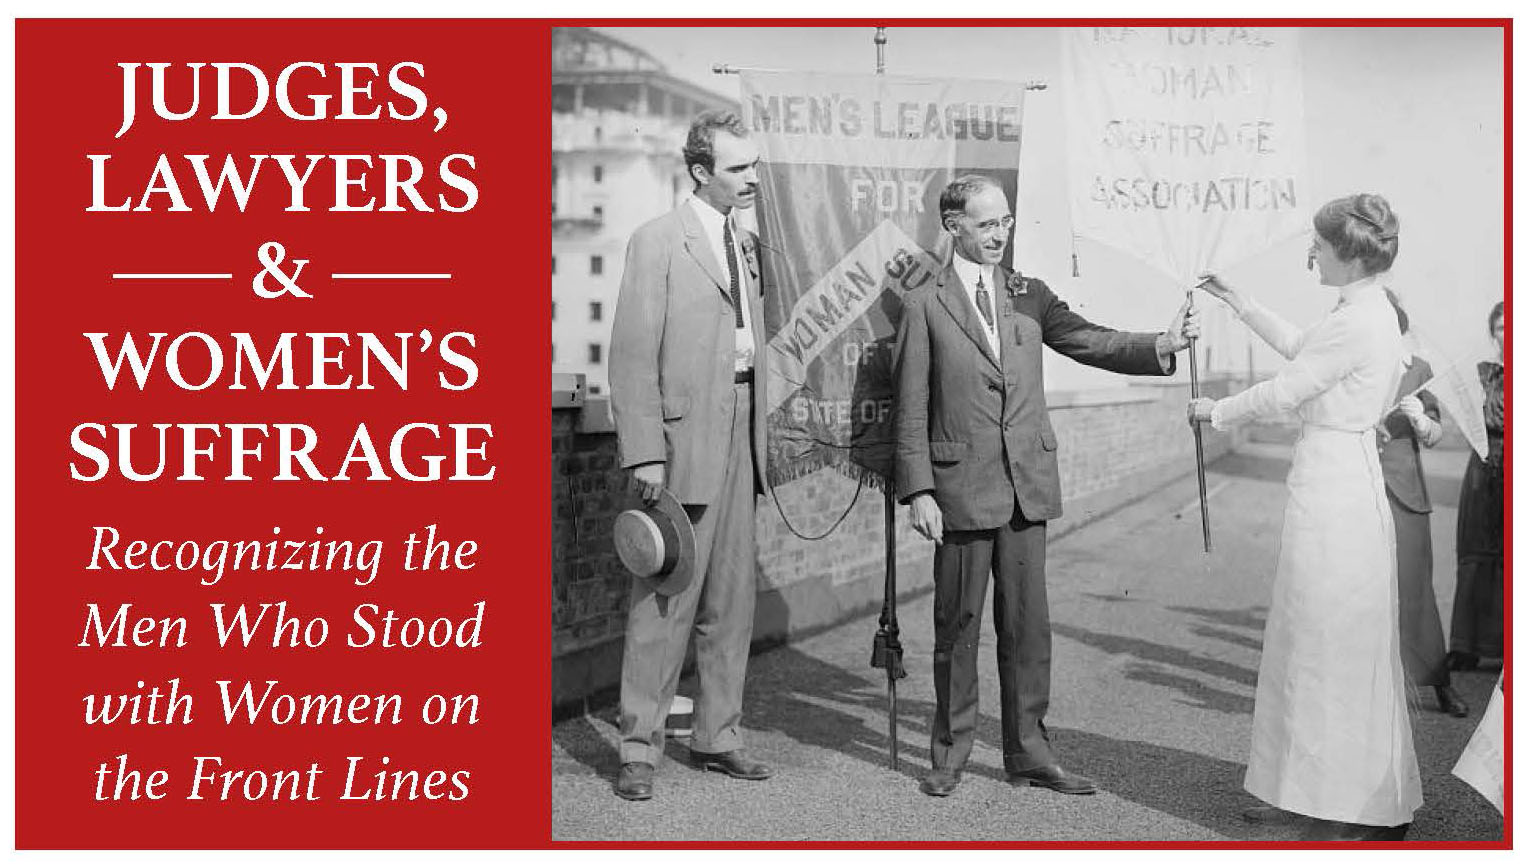 Judges, Lawyers and Women's Suffrage